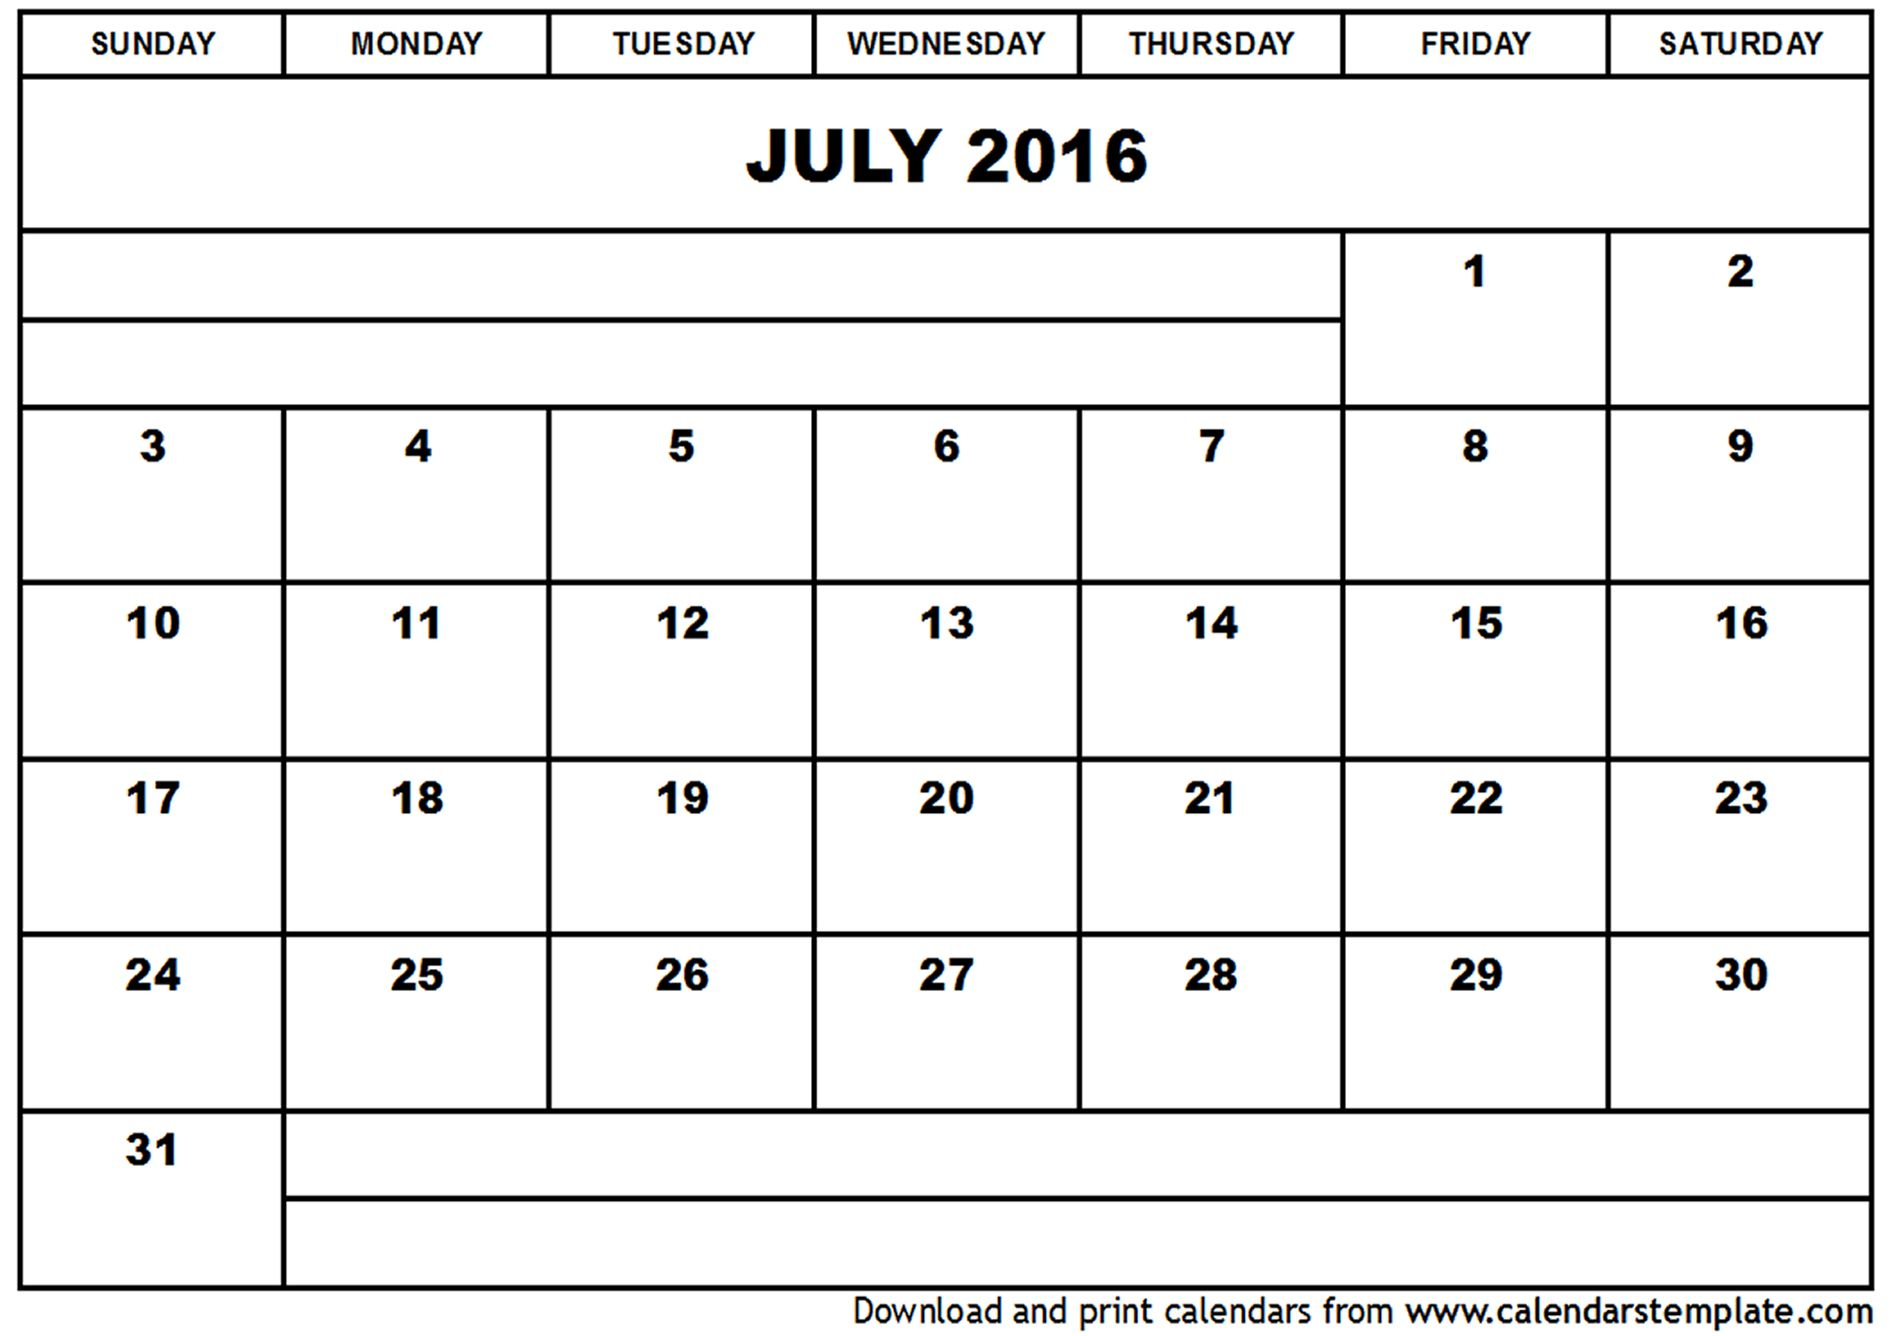 July 2016 Calendar Full Page With Images Print